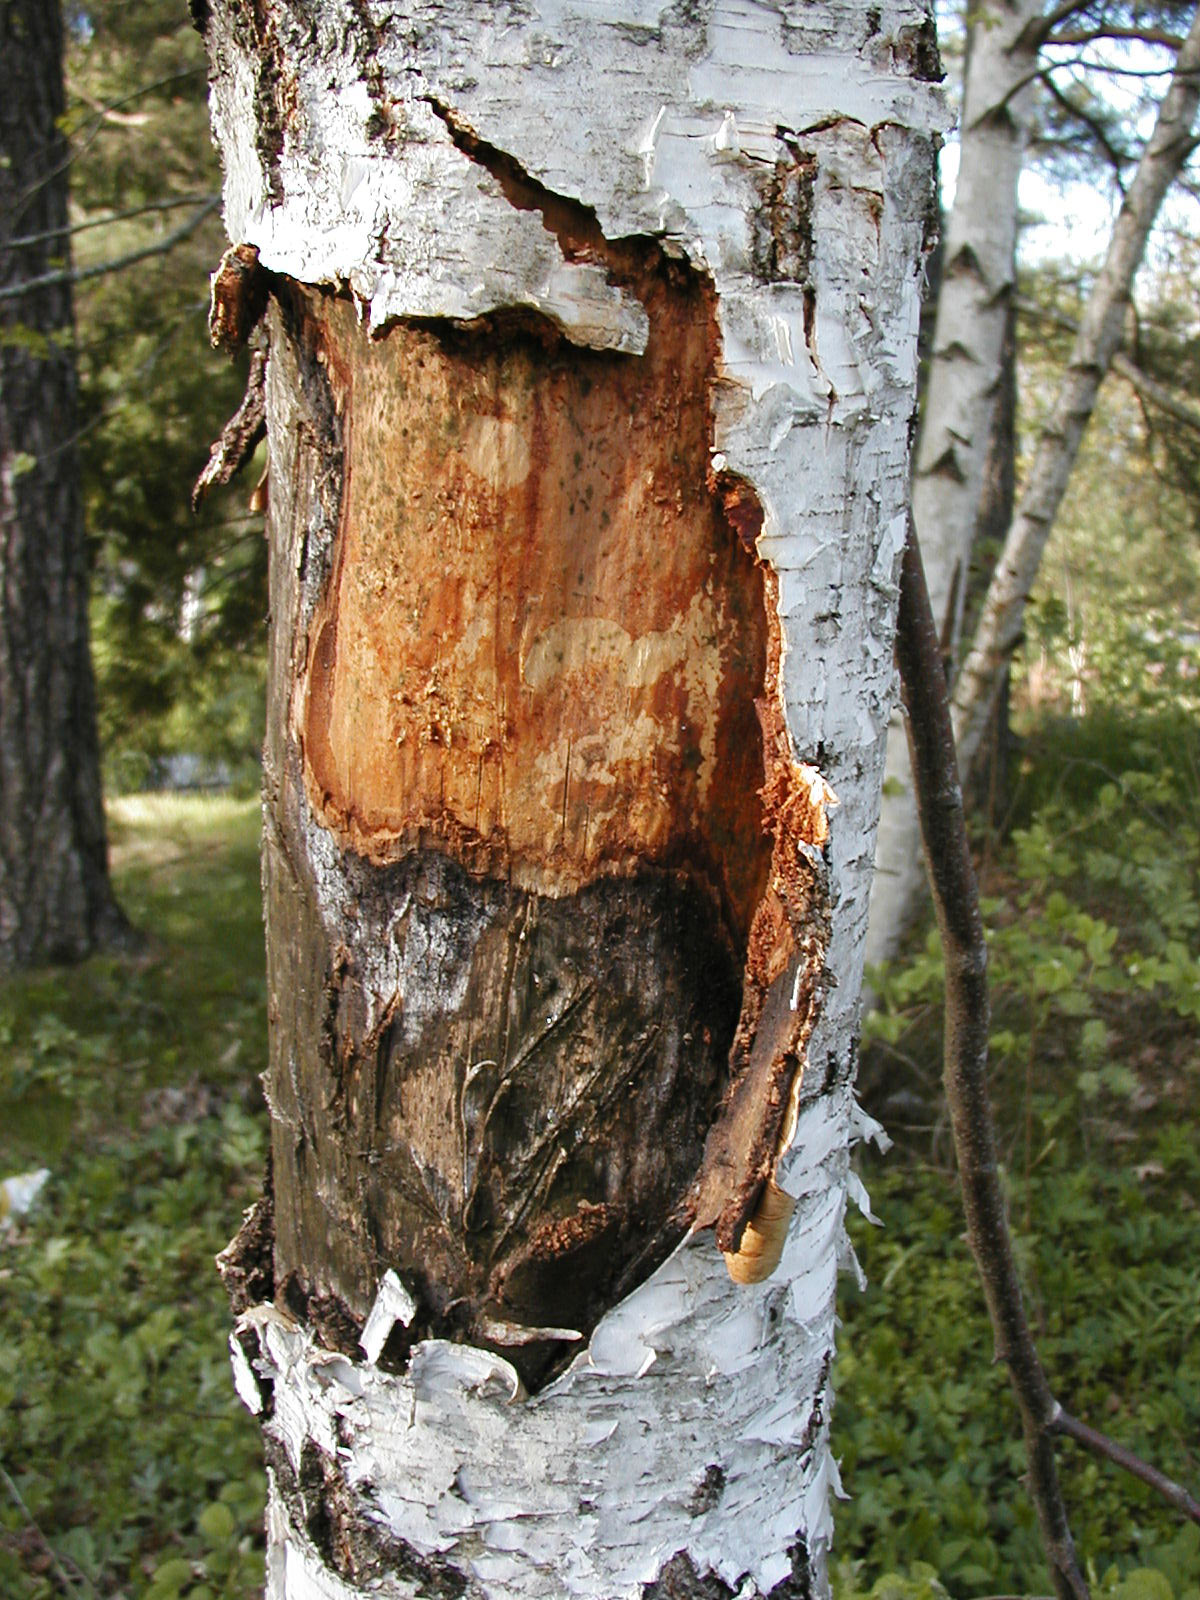 Tree bark, Bark, Cut, Open, Plant, HQ Photo